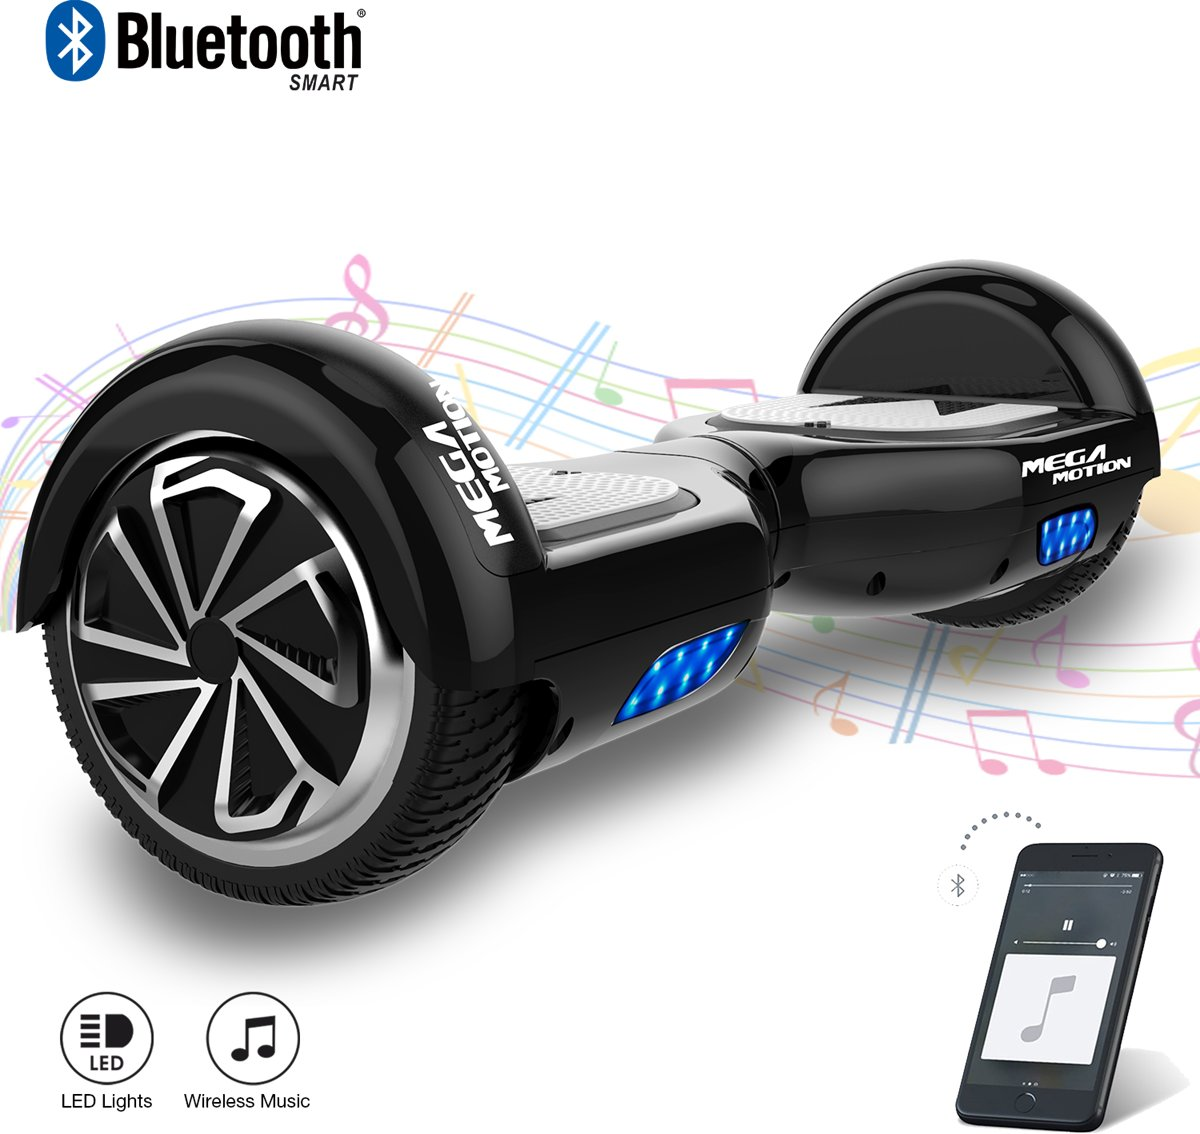 MEGA MOTION Self Balancing Smart Hoverboard Balance Scooter 6.5 inch/ V.5 Bluetooth speakers/ LED Verlichting /speciaal ontwerp - Zwart